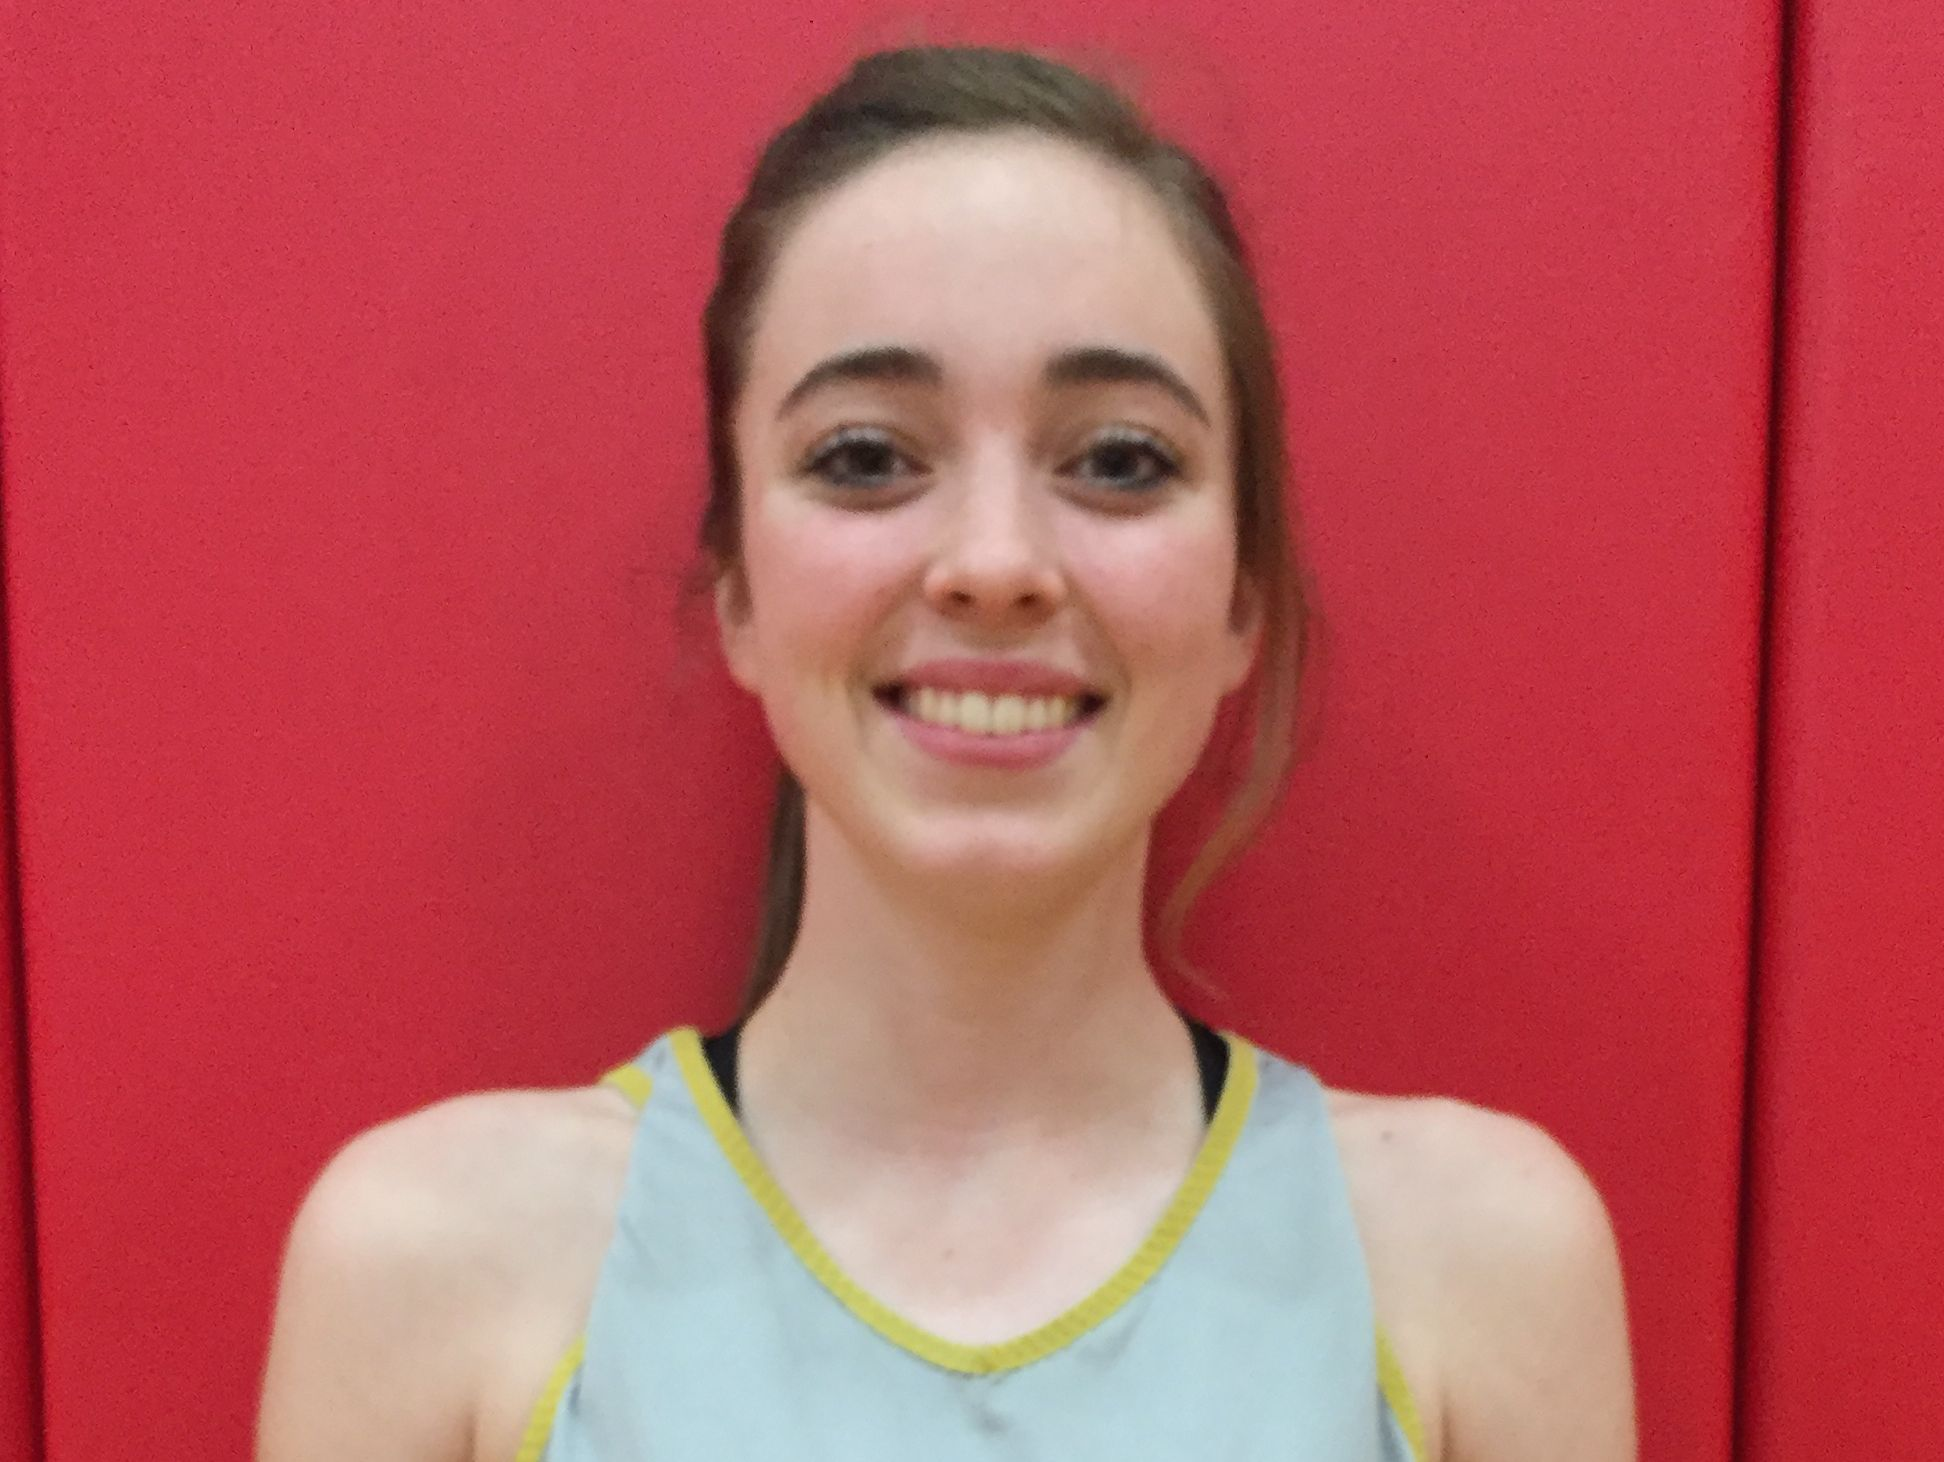 Sarah Barcello, from Chandler Seton Catholic, is azcentral sports' Female Athlete of the Week for Dec. 31-Jan. 7.